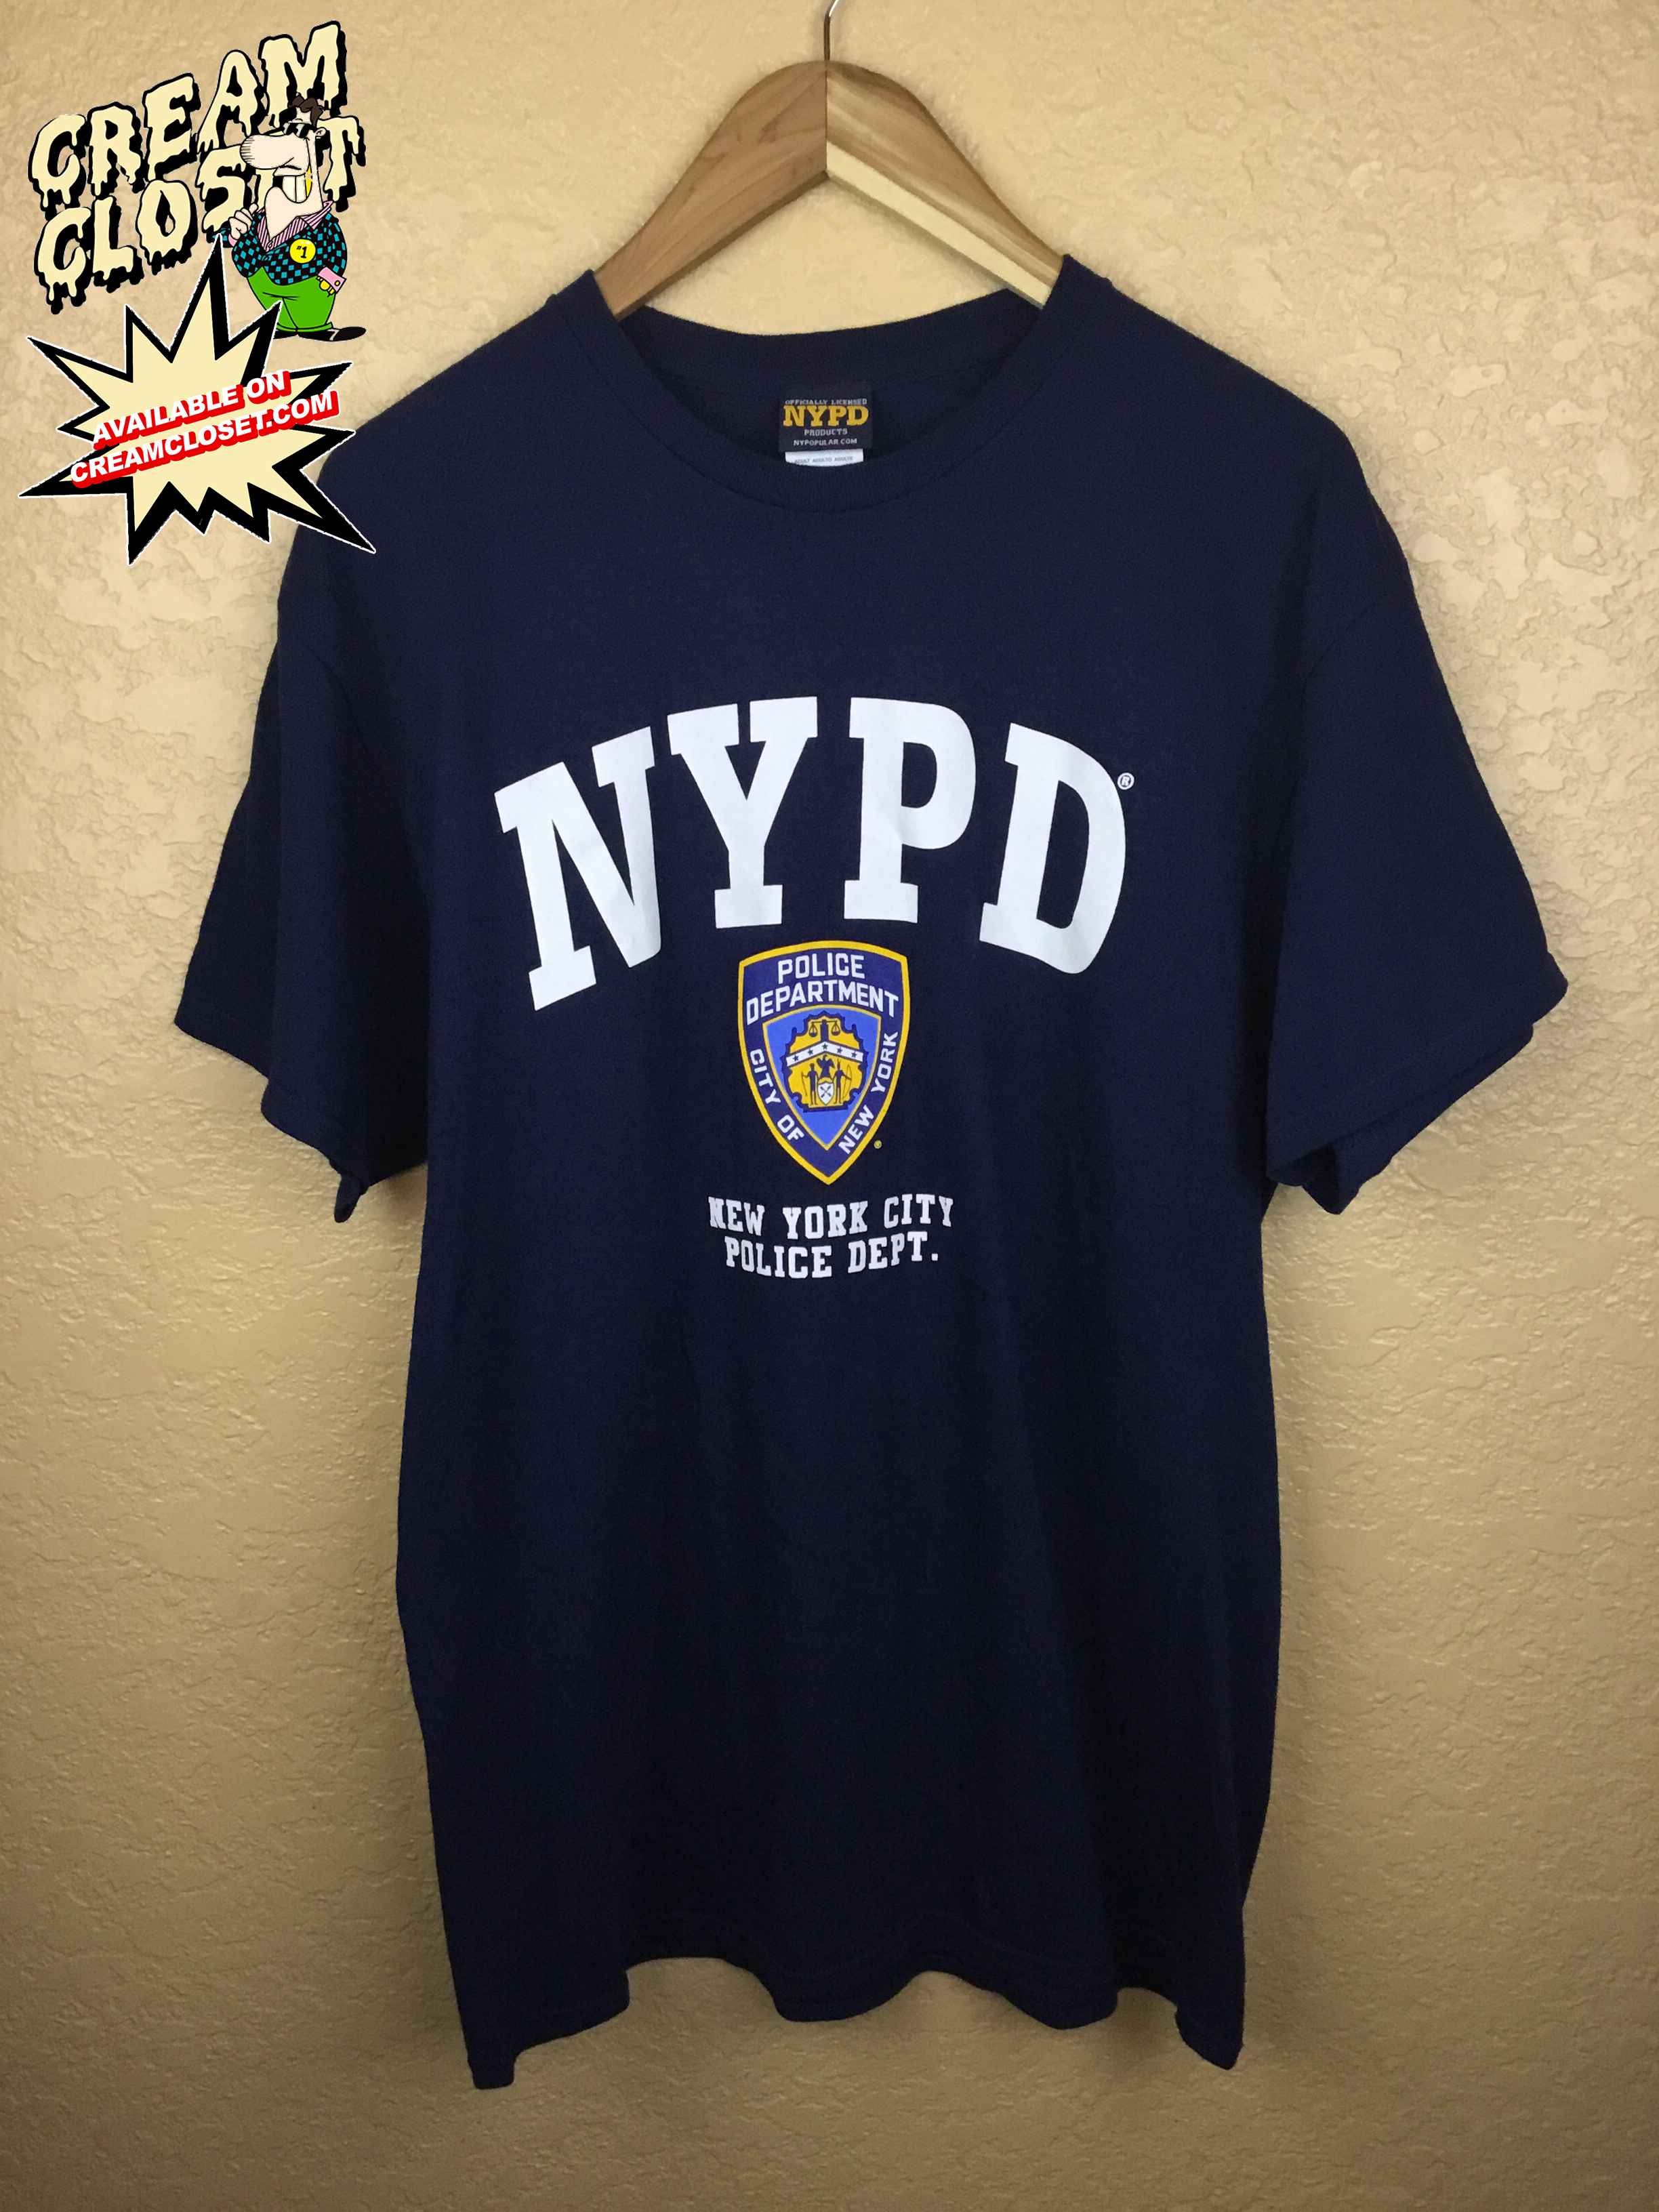 806d1a303 Vintage × !! LAST DROP !! DELETING IN 2 HOURS !! NYPD NEW YORK POLICE  DEPARTMENT BIG EMBLEM LOGO IN NAVY BLUE